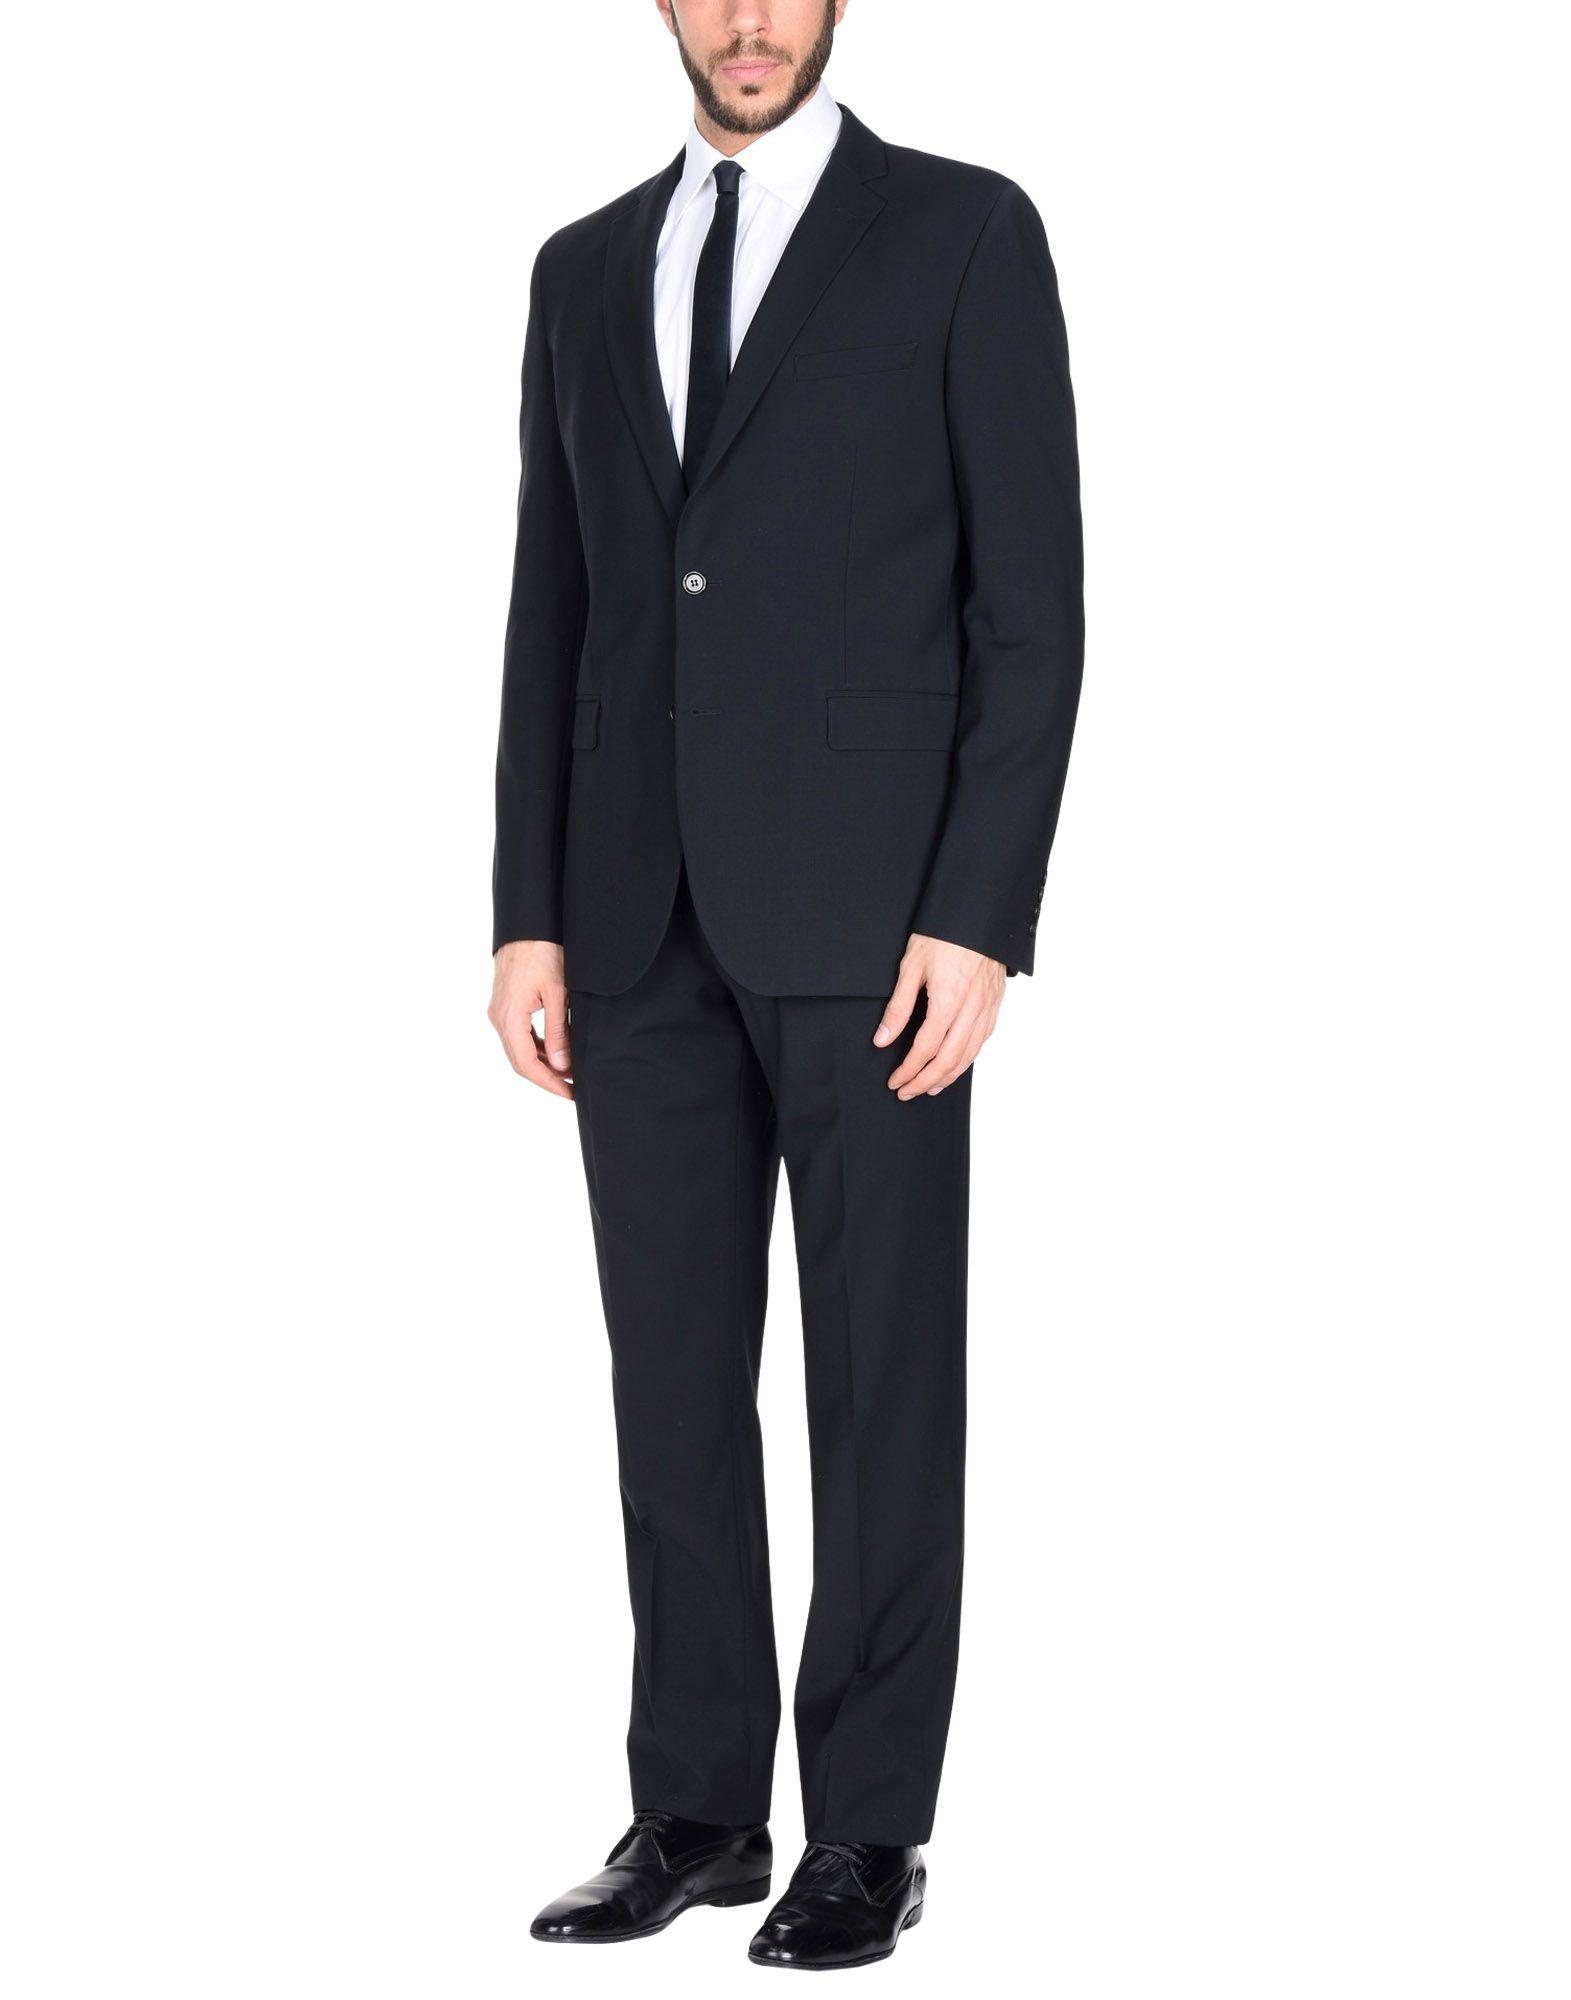 Paoloni Suits In Dark Blue